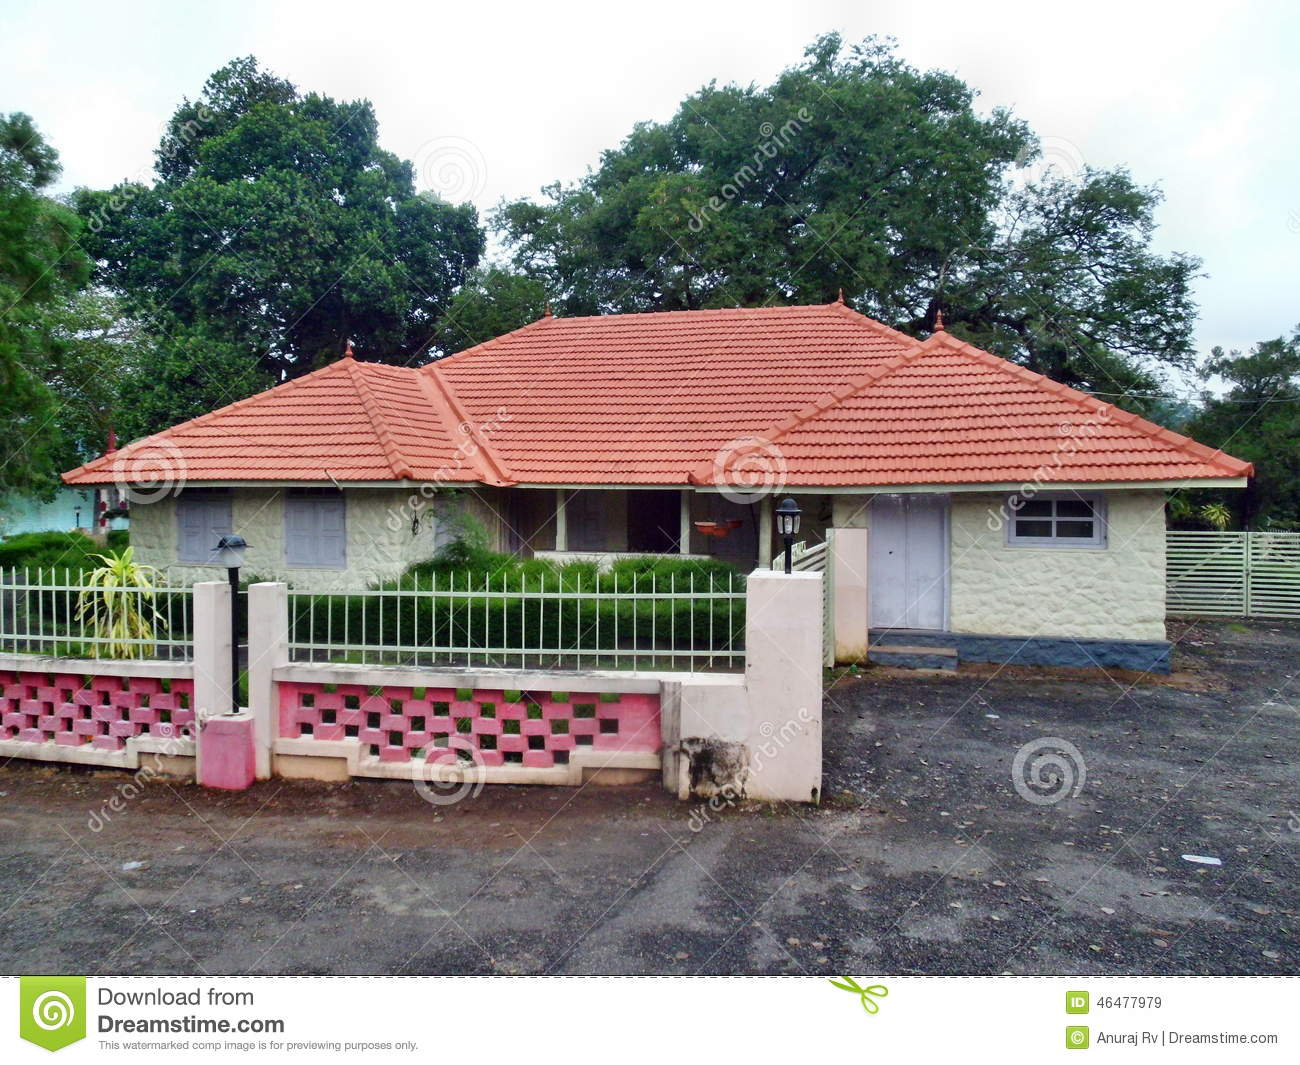 Kerala model house stock image image of building road for Kerala model house photos with details